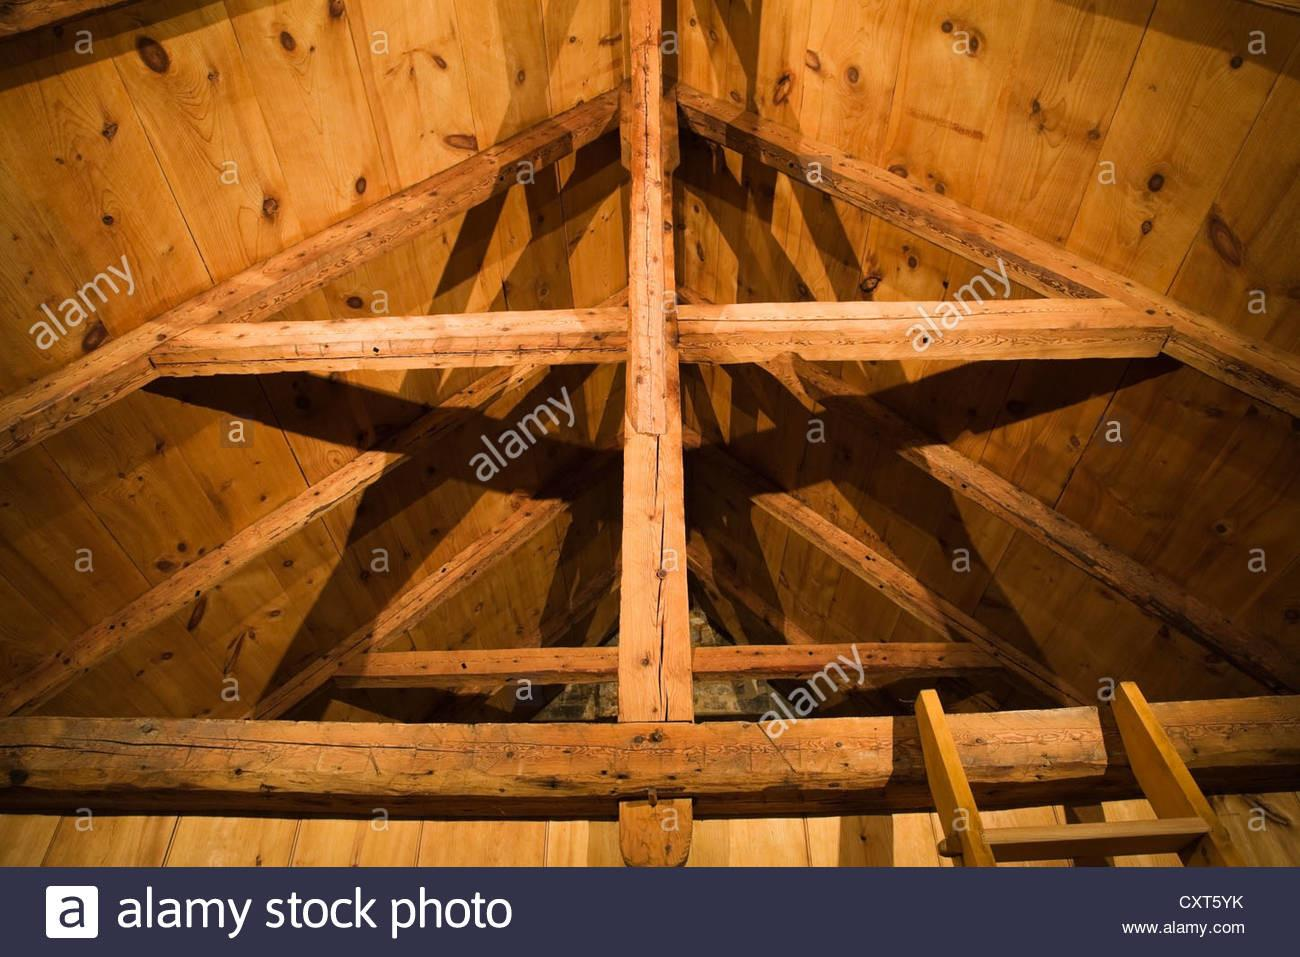 Exposed Wooden Beams Rafters Roof Boards Framework